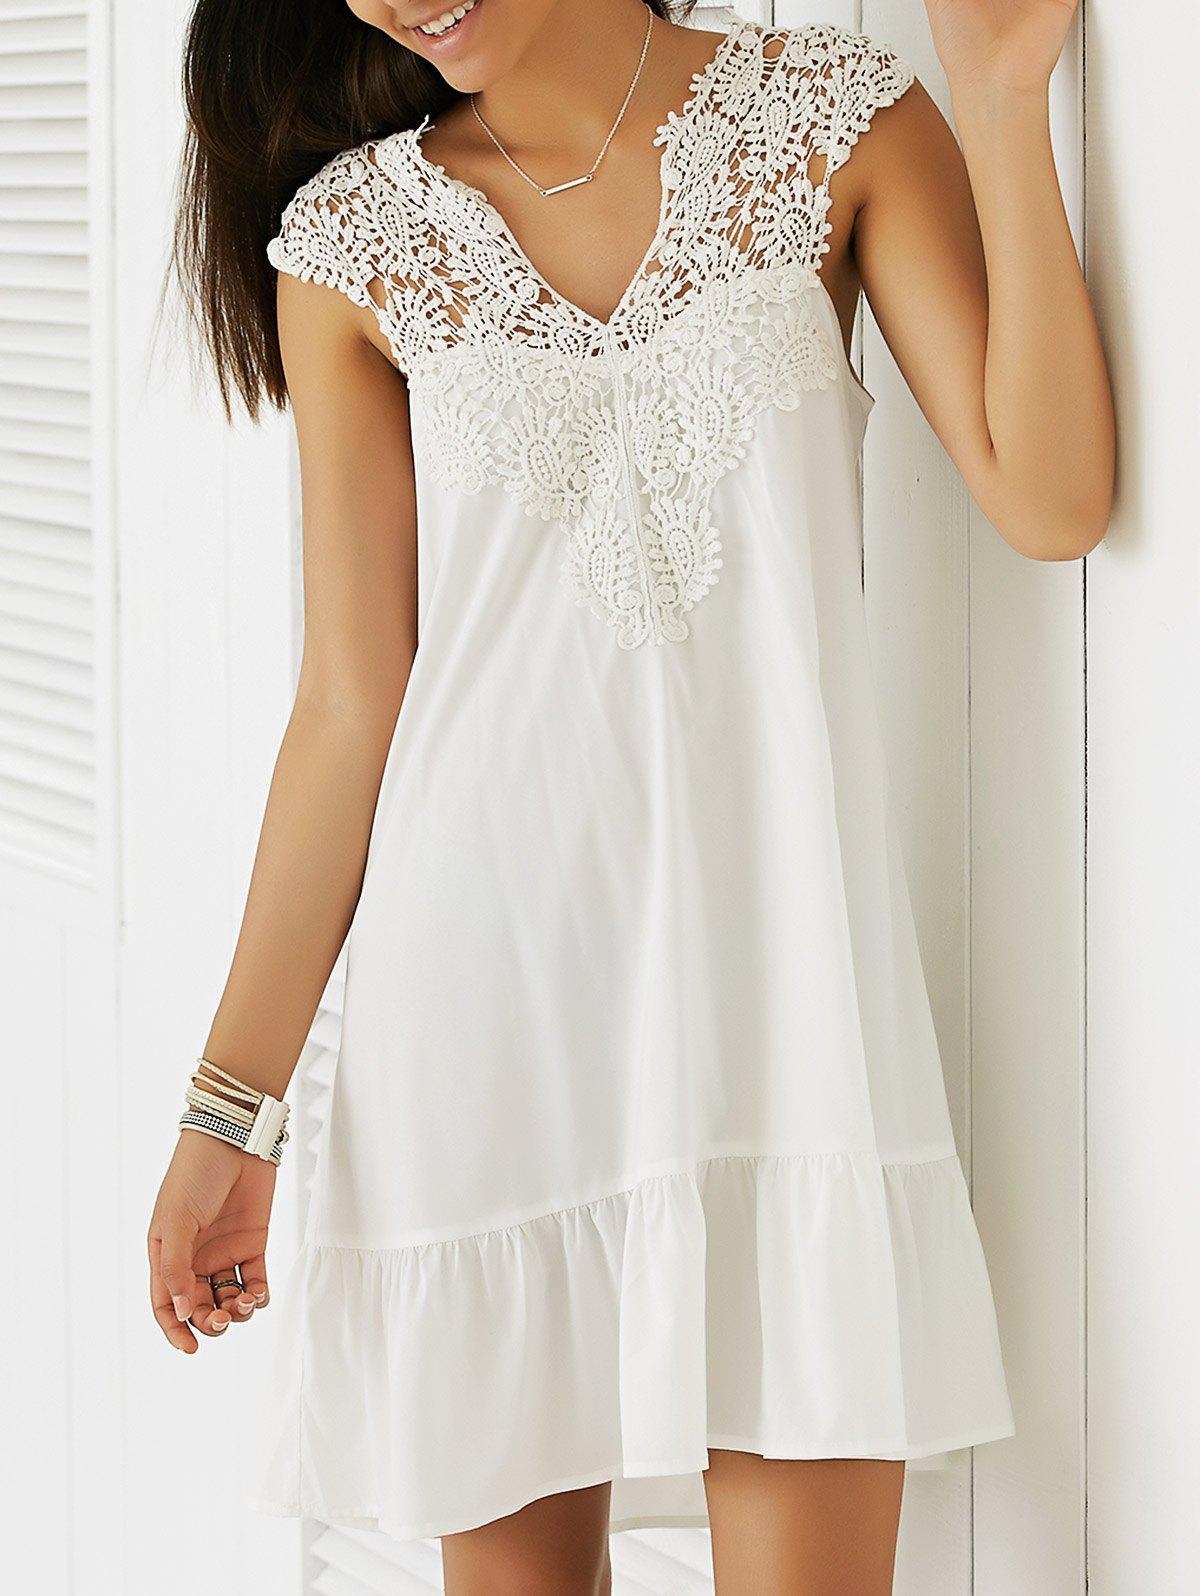 Casual Women's Sleeveless Cut-Out Lace Splicing Flounce Dress - WHITE XL